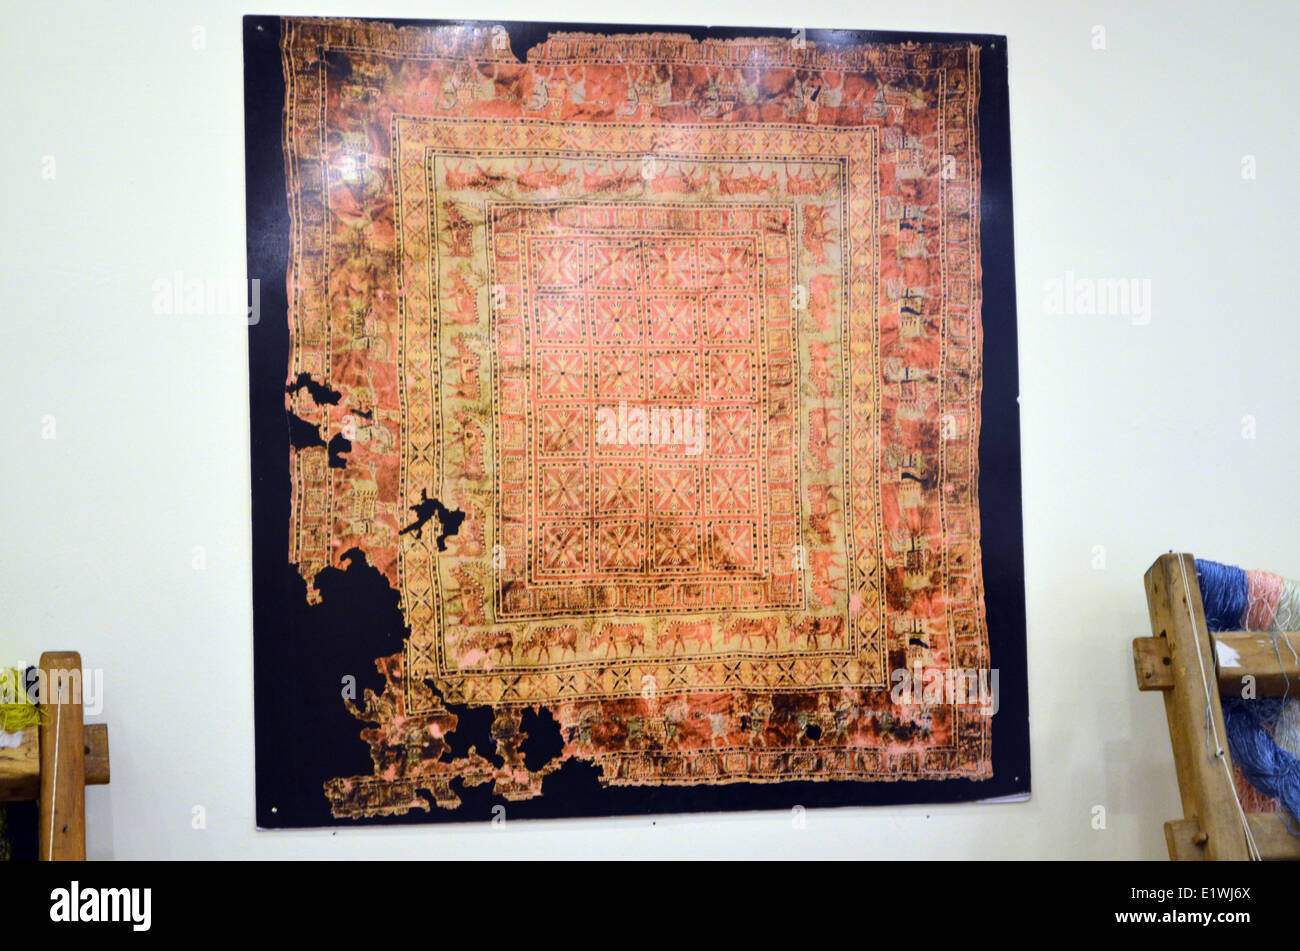 A carpet of 5000 yrs old on display at the carpet where it was made many years ago. - Stock Image